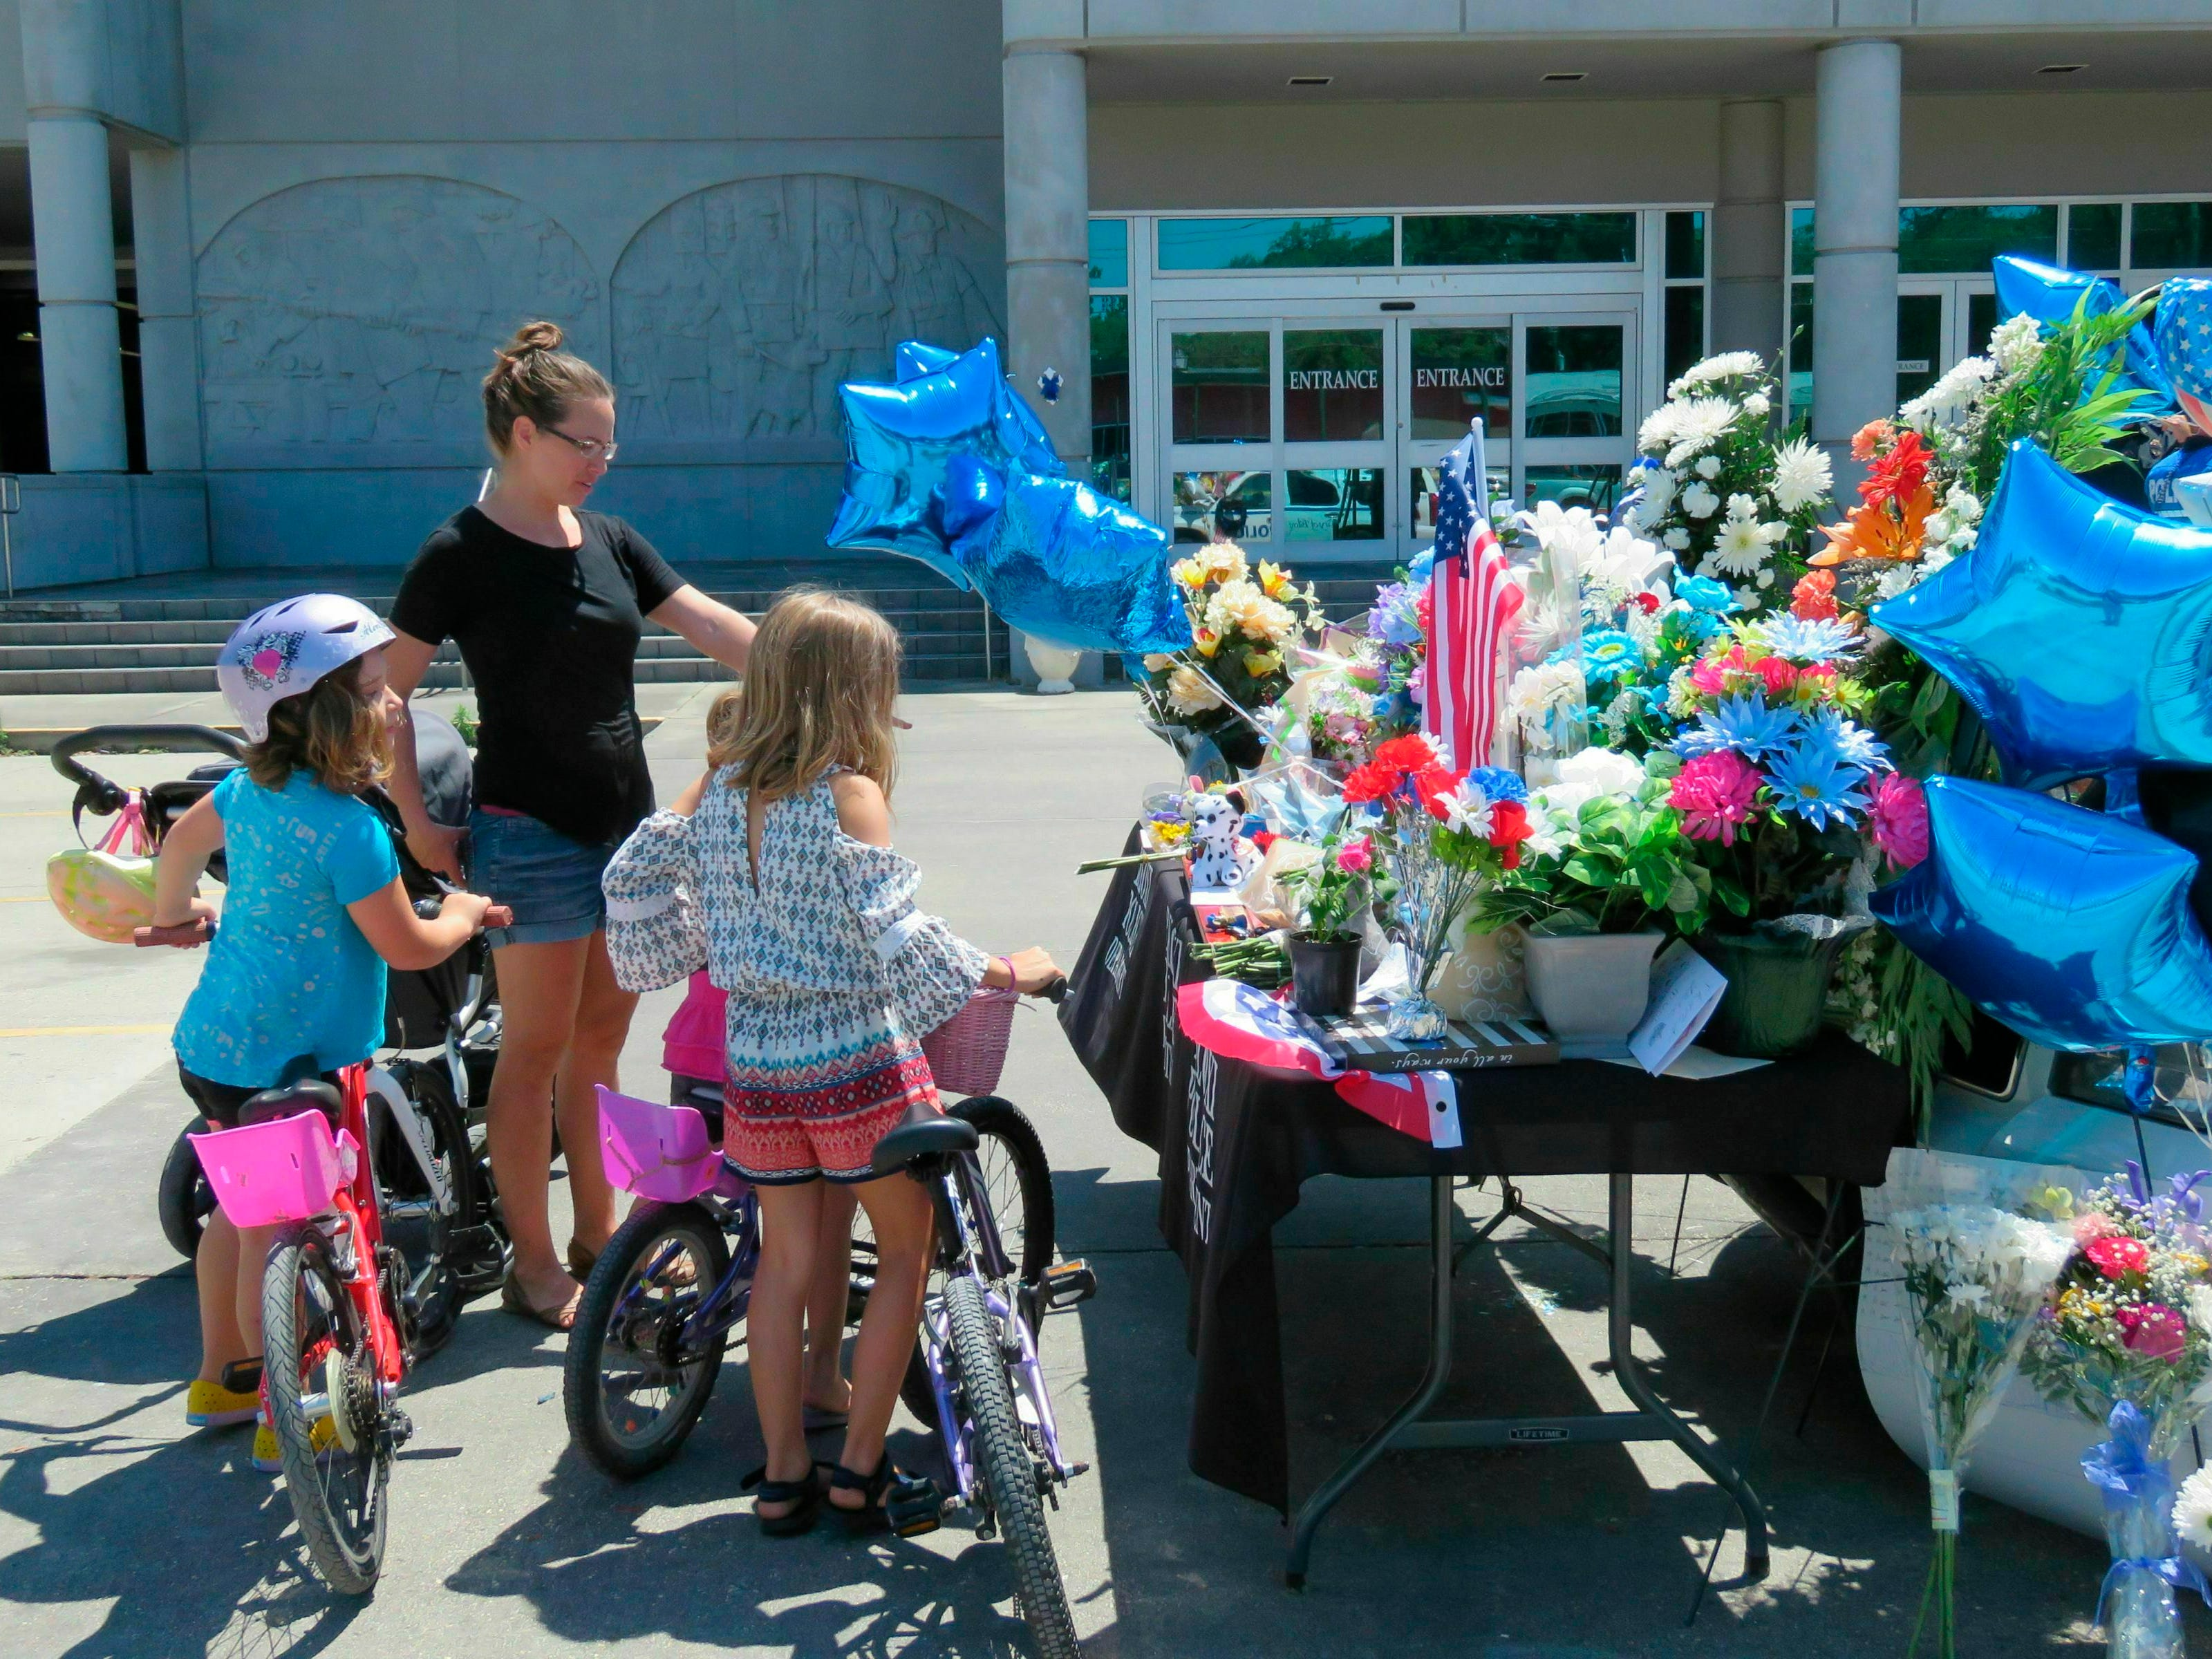 Natalie Rickert of Biloxi, Miss., and her daughters Alethea, 9, right,, London, 7, left, and Haven 5, hidden, look at a Biloxi police vehicle that was assigned to patrolman Robert McKeithen that is covered in flowers, Tuesday, May 7, 2019, in Biloxi, Miss.